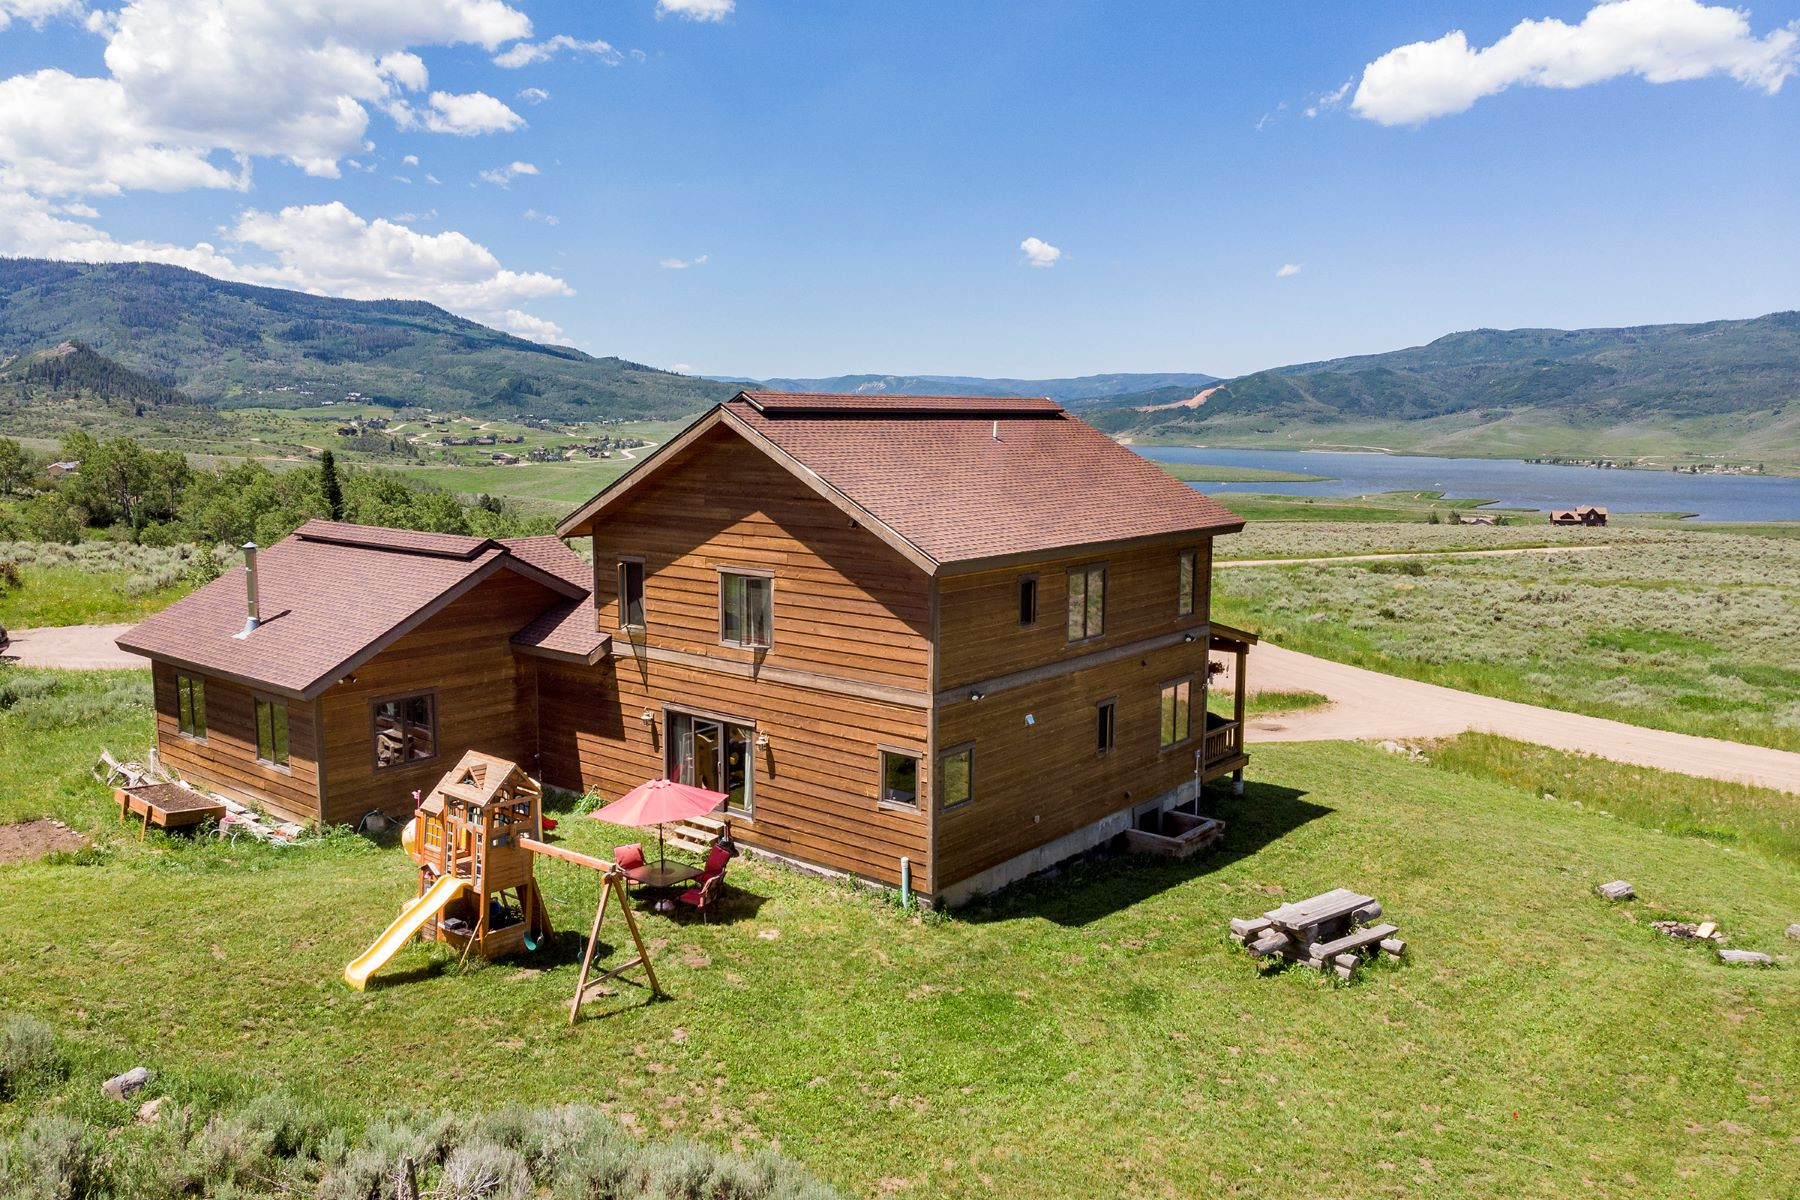 Single Family Homes for Active at Outstanding Views at Southshore 31685 Shoshone Way Oak Creek, Colorado 80467 United States